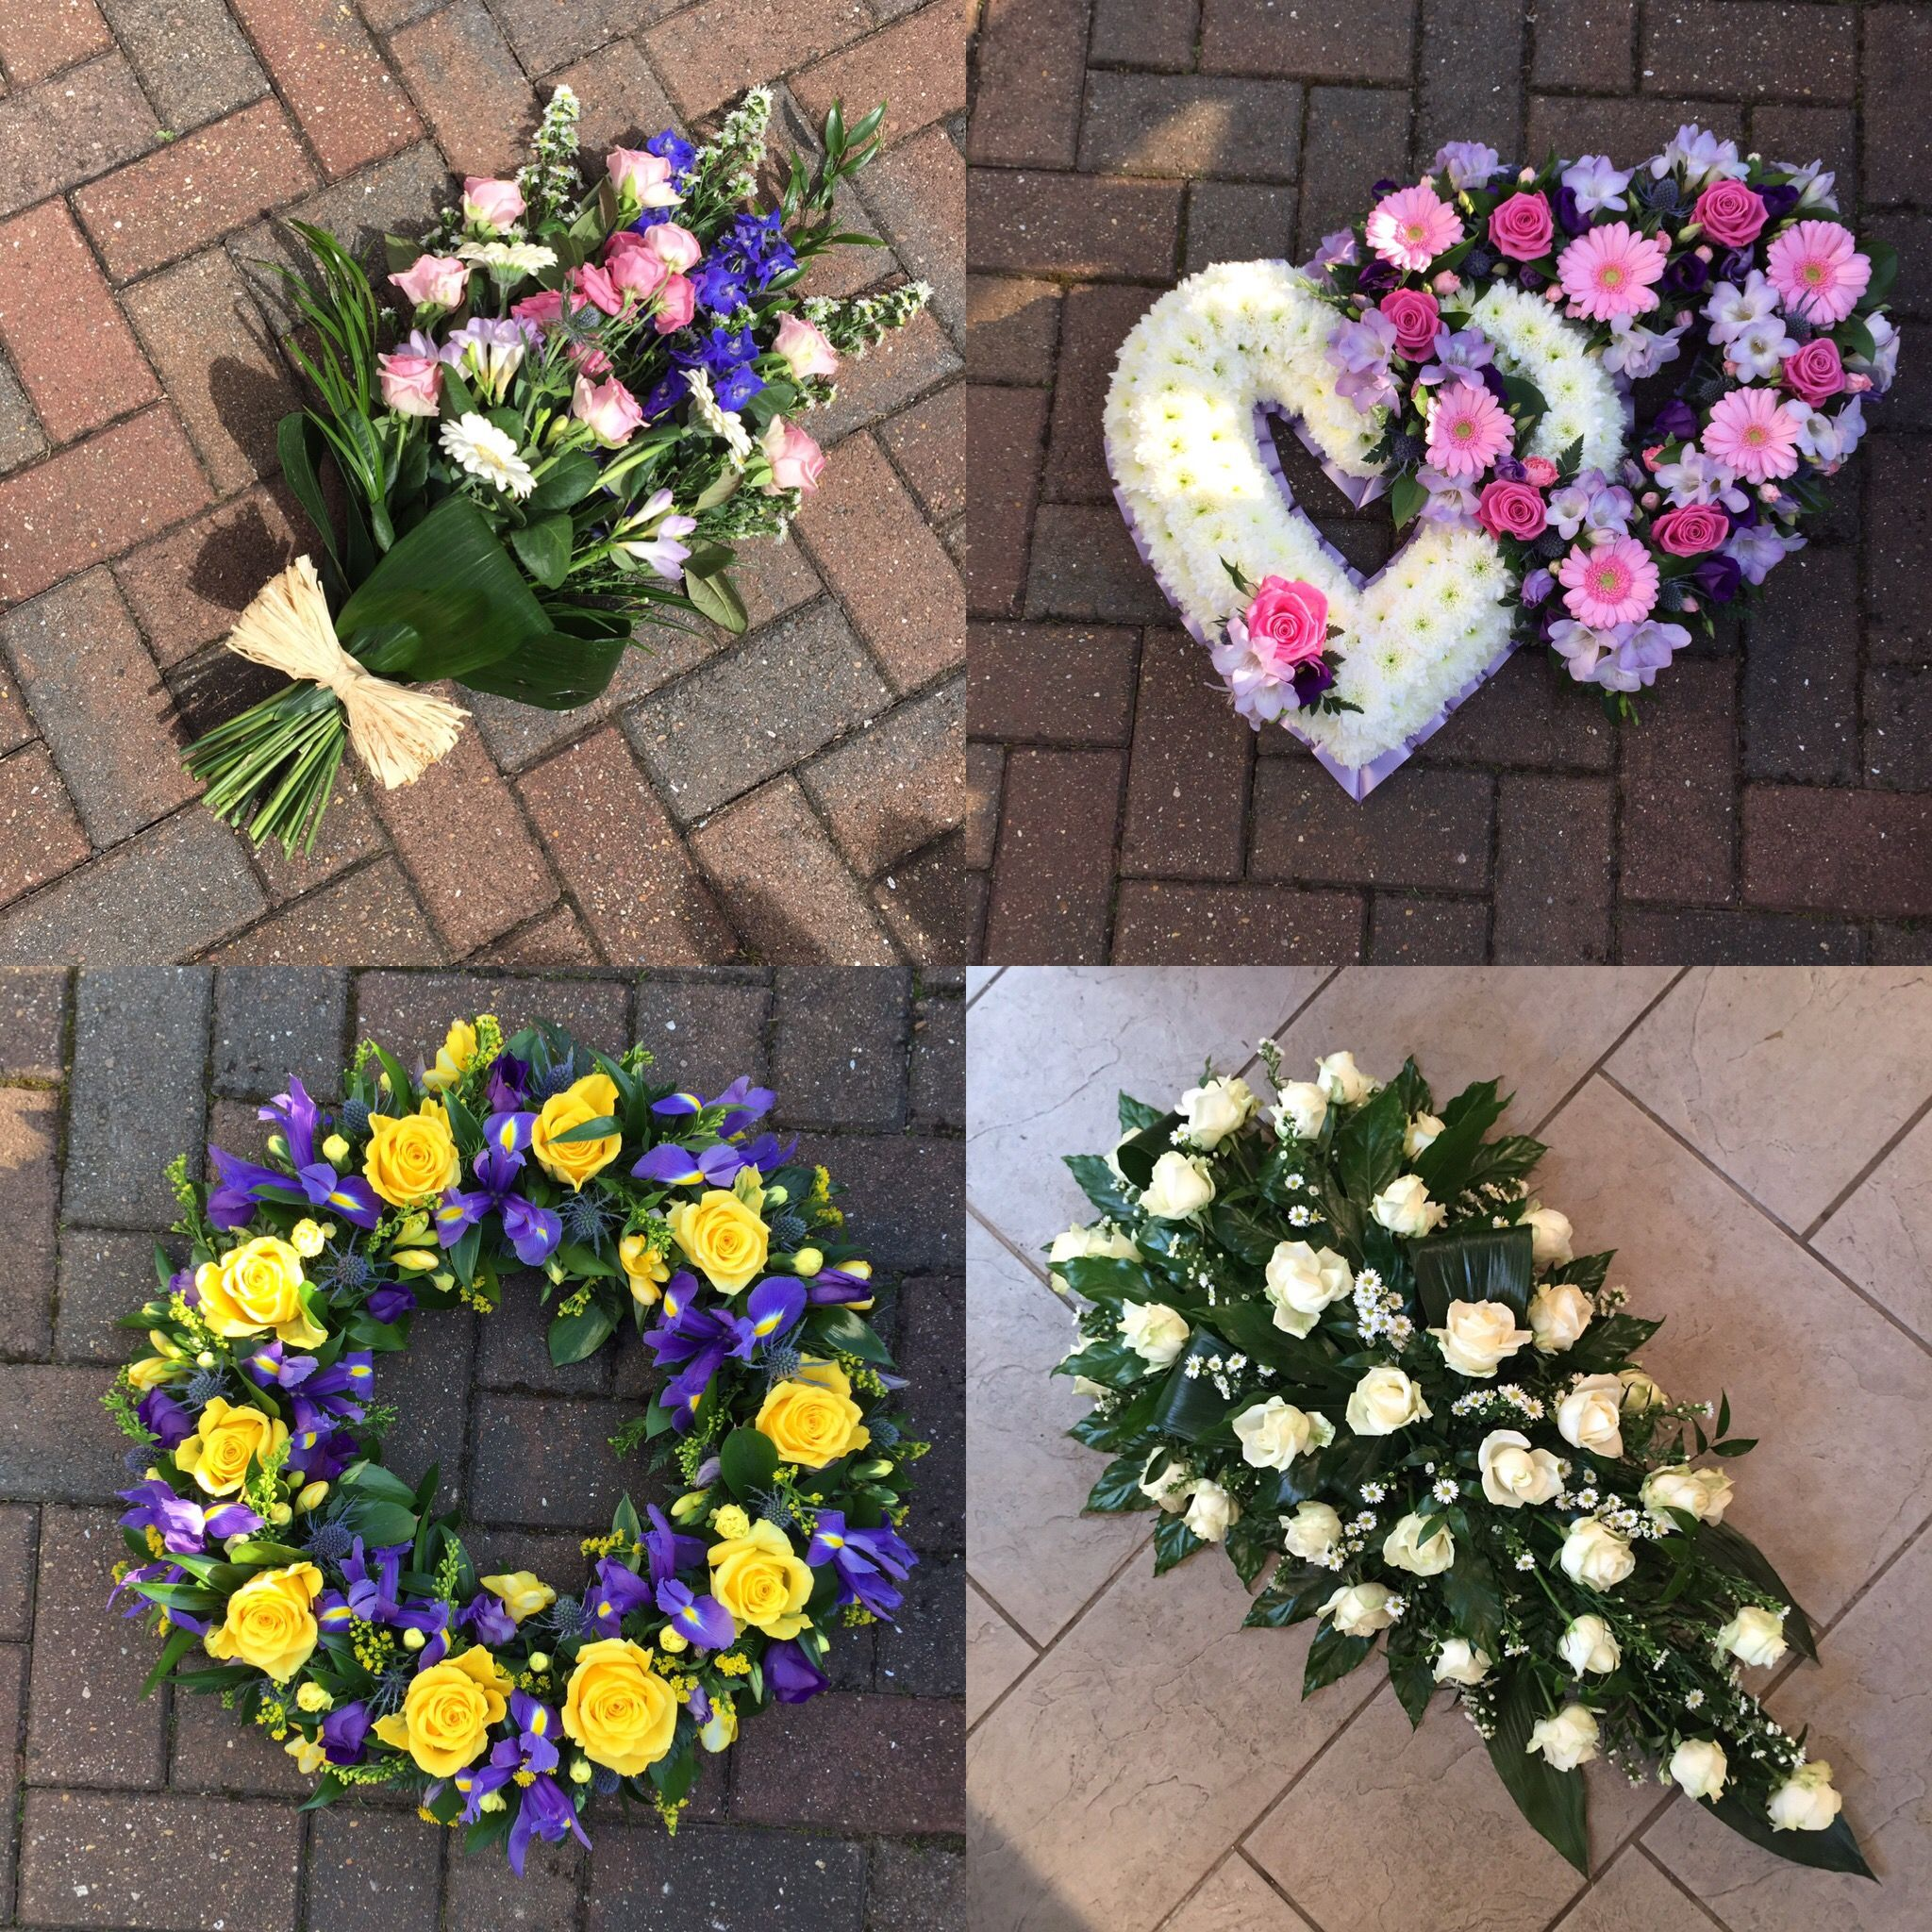 Funeral Arrangements For A Lady Wreath Coffin Spray Double Heart And Sheaf Designs I Funeral Floral Arrangements Funeral Flowers Funeral Flower Arrangements